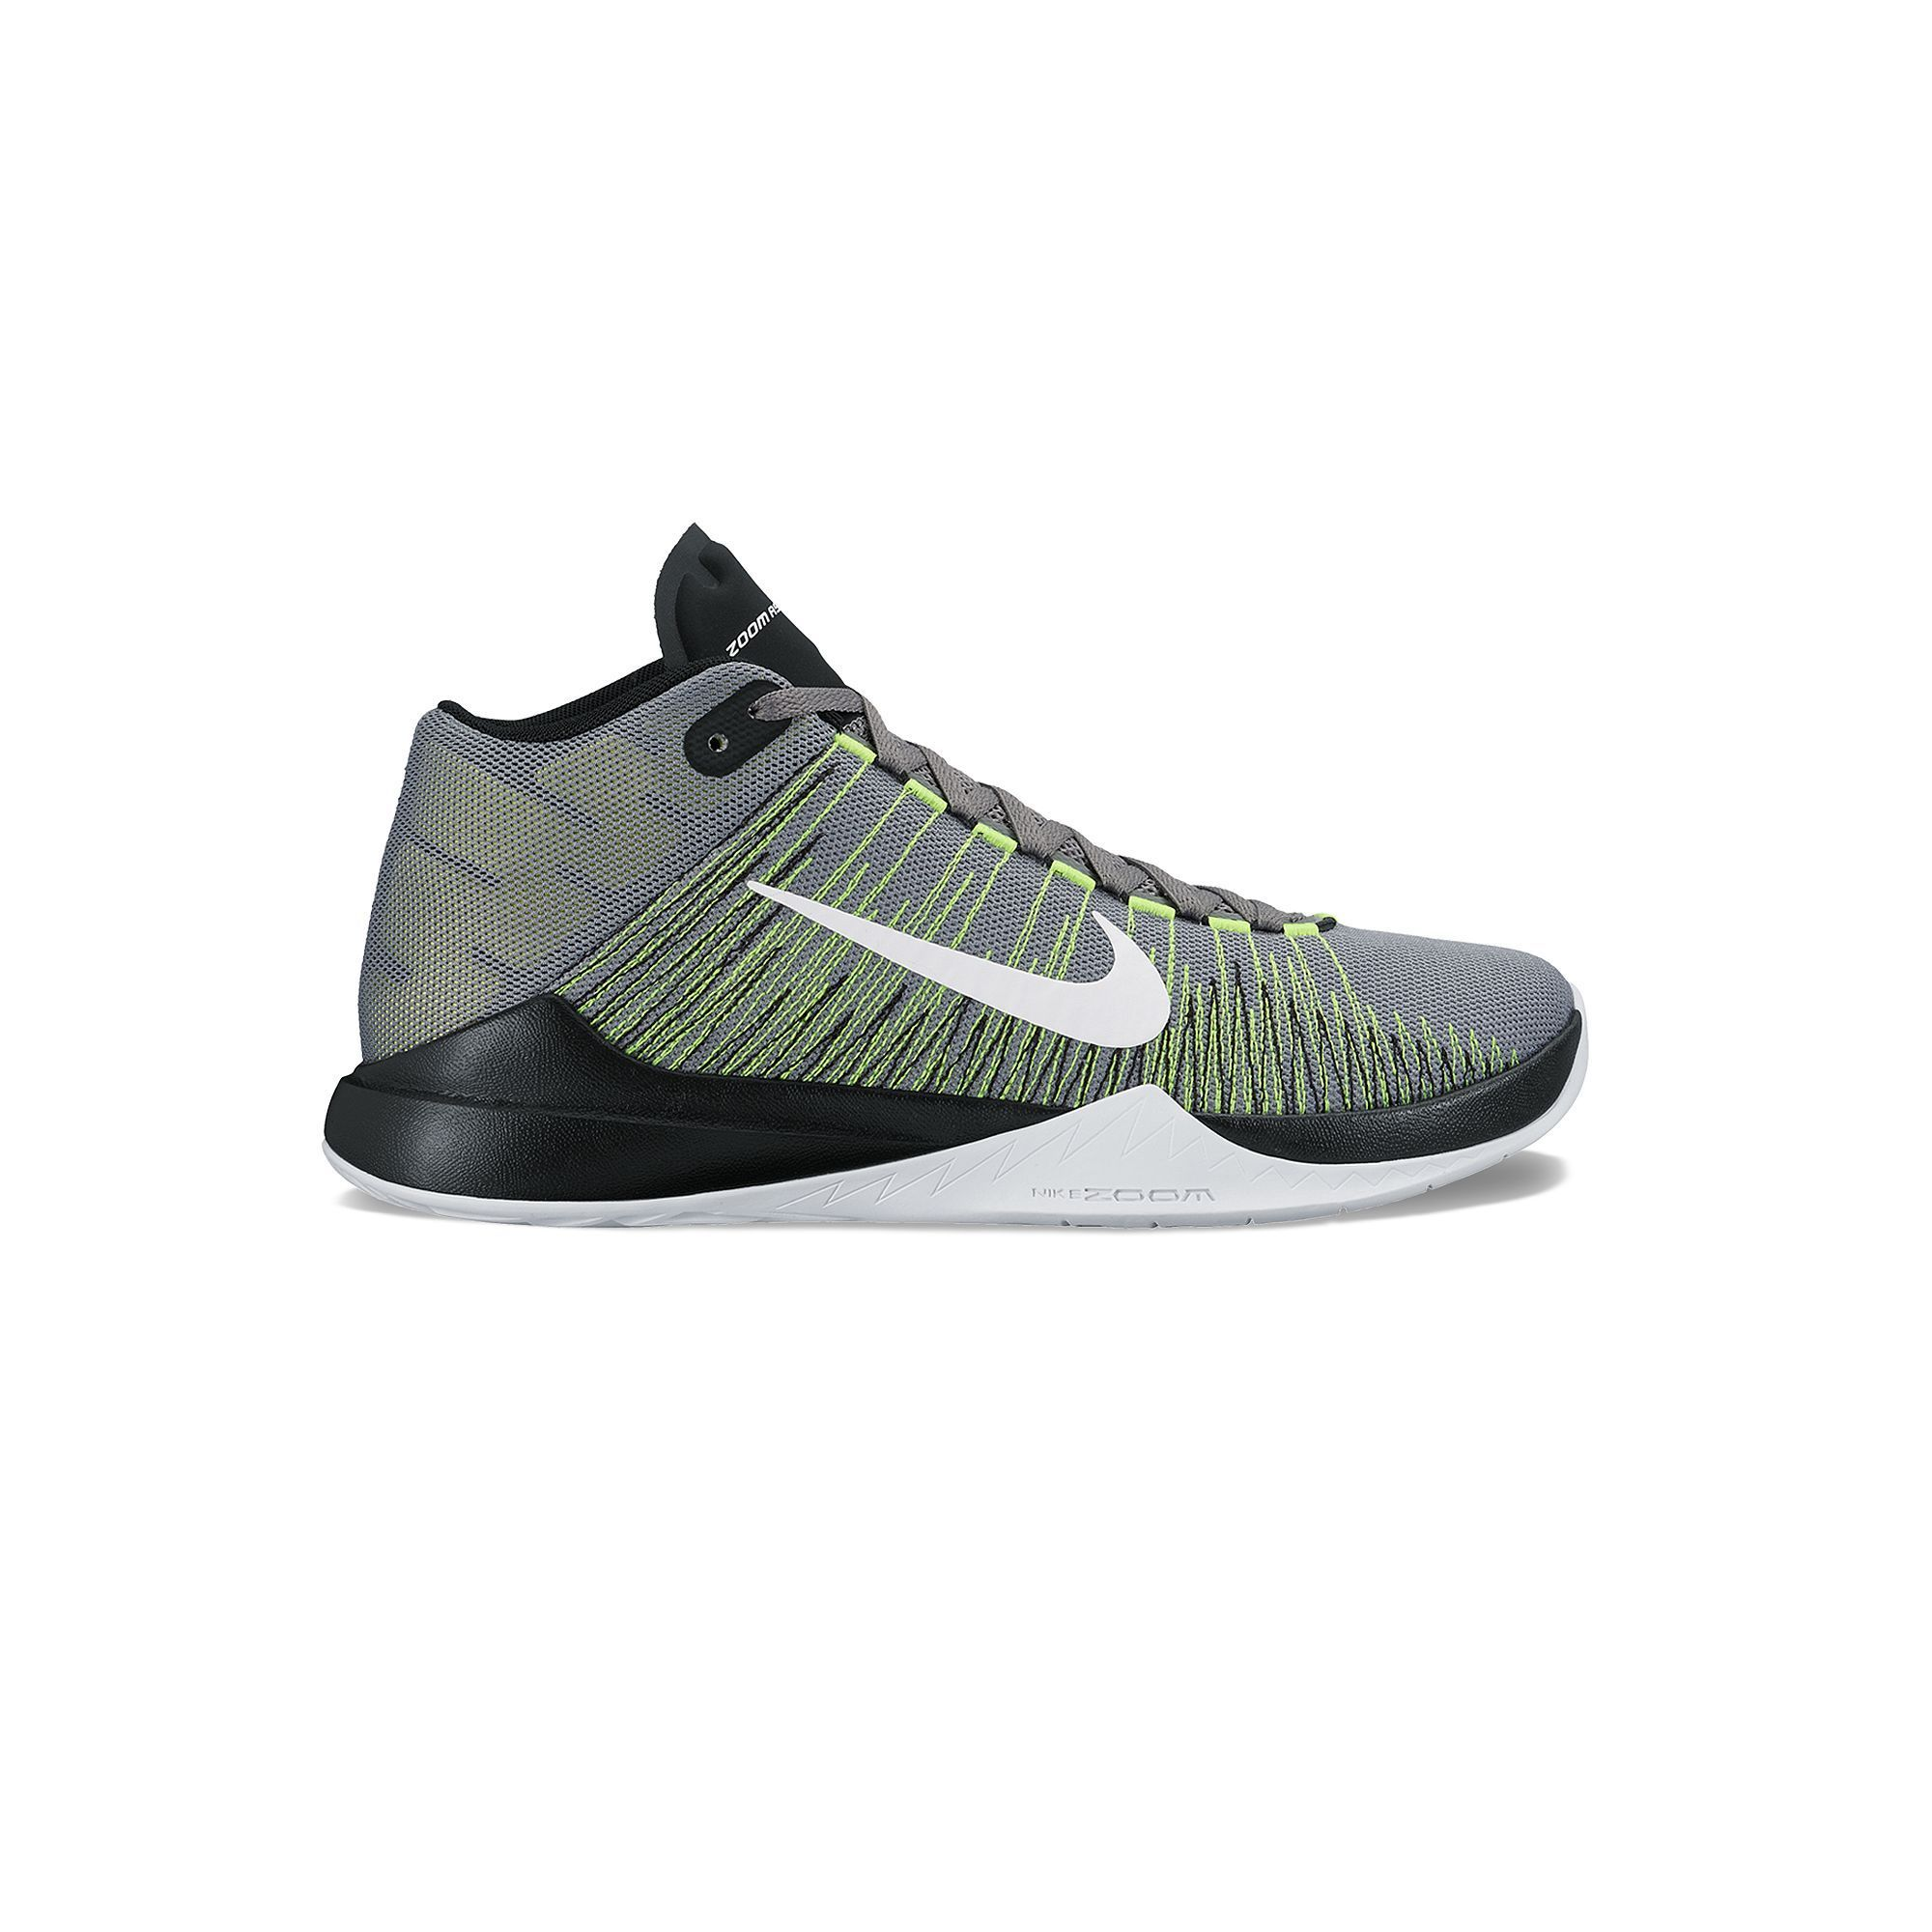 Nike Zoom Ascension Men's Basketball Shoes, Black